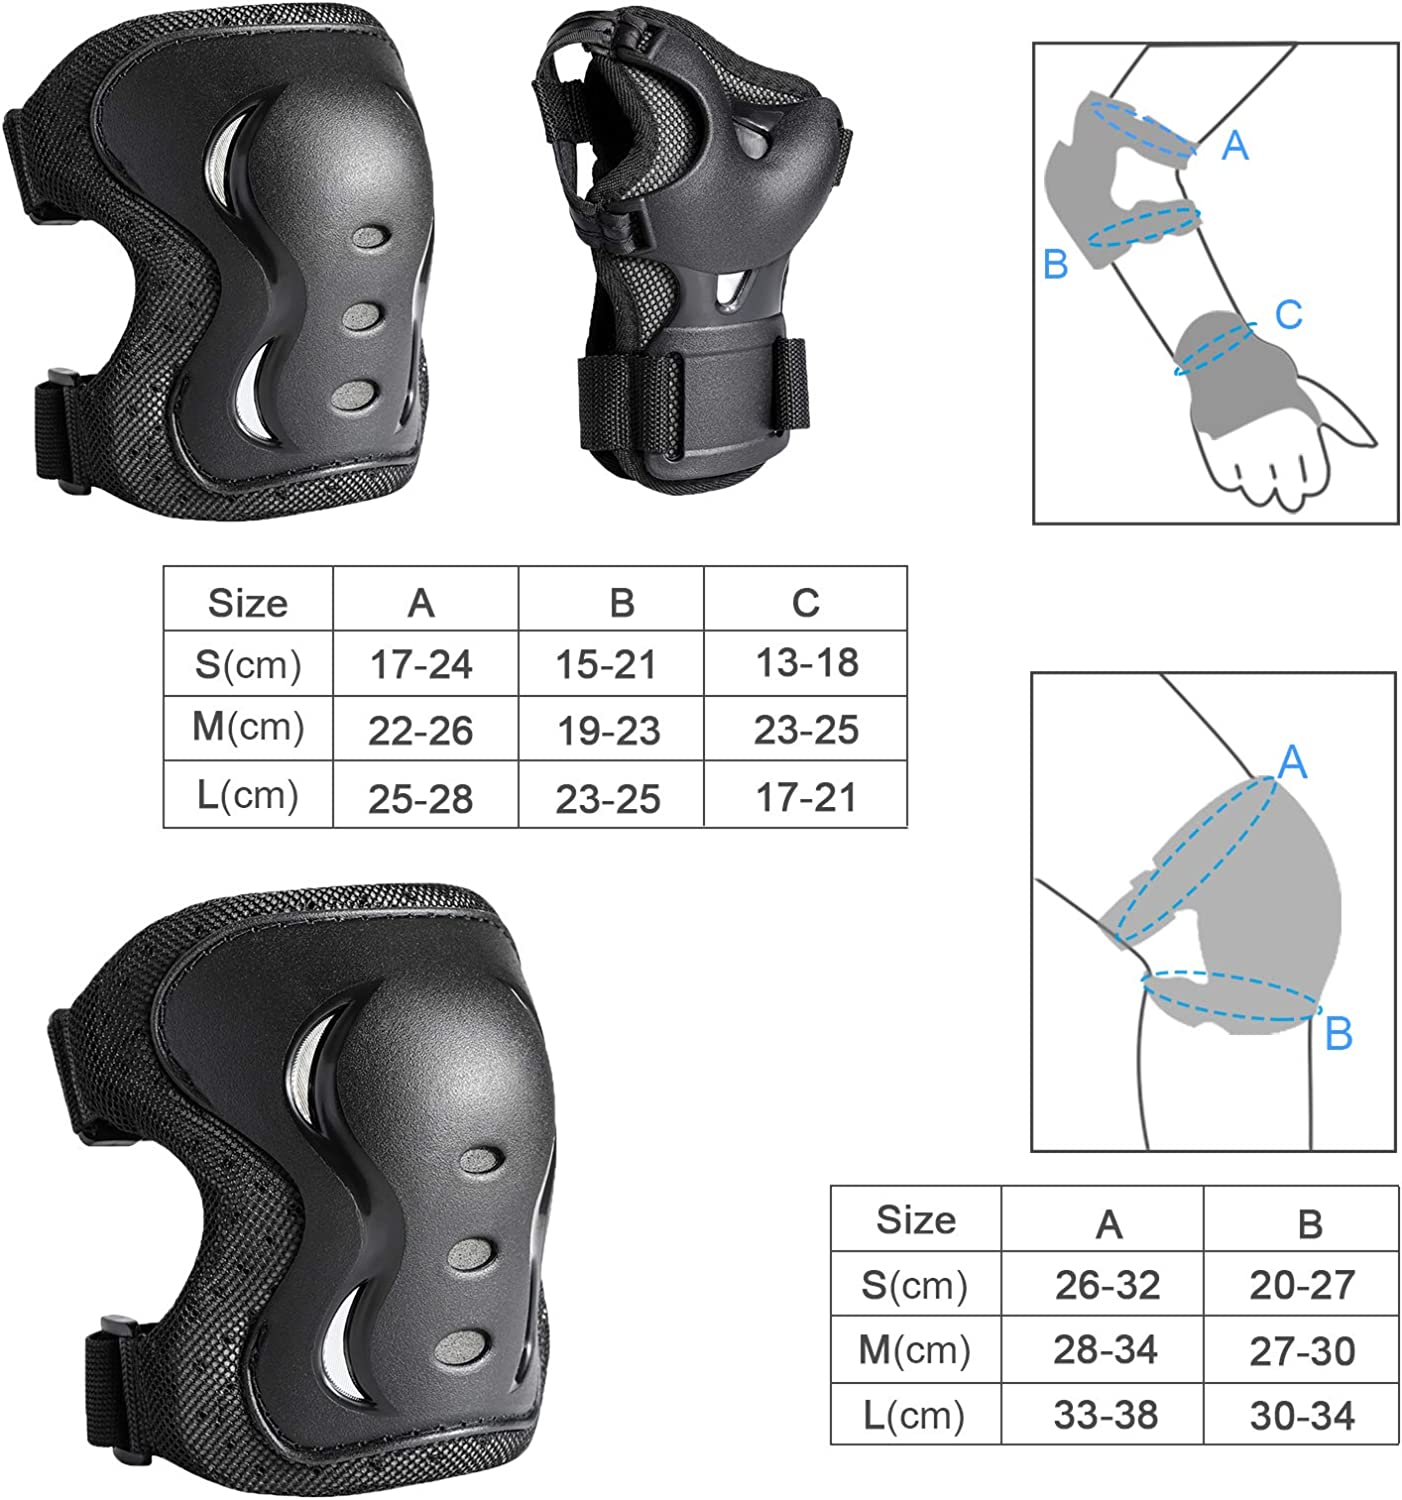 Knee Pads for Kids dirt bike POMELOLEAVE Knee and Elbow pads for kids and teen Protective Gear 6 in 1 Set for Inline Skating 9-12 age Medium Rollerblades Skateboard Longboarding Pink